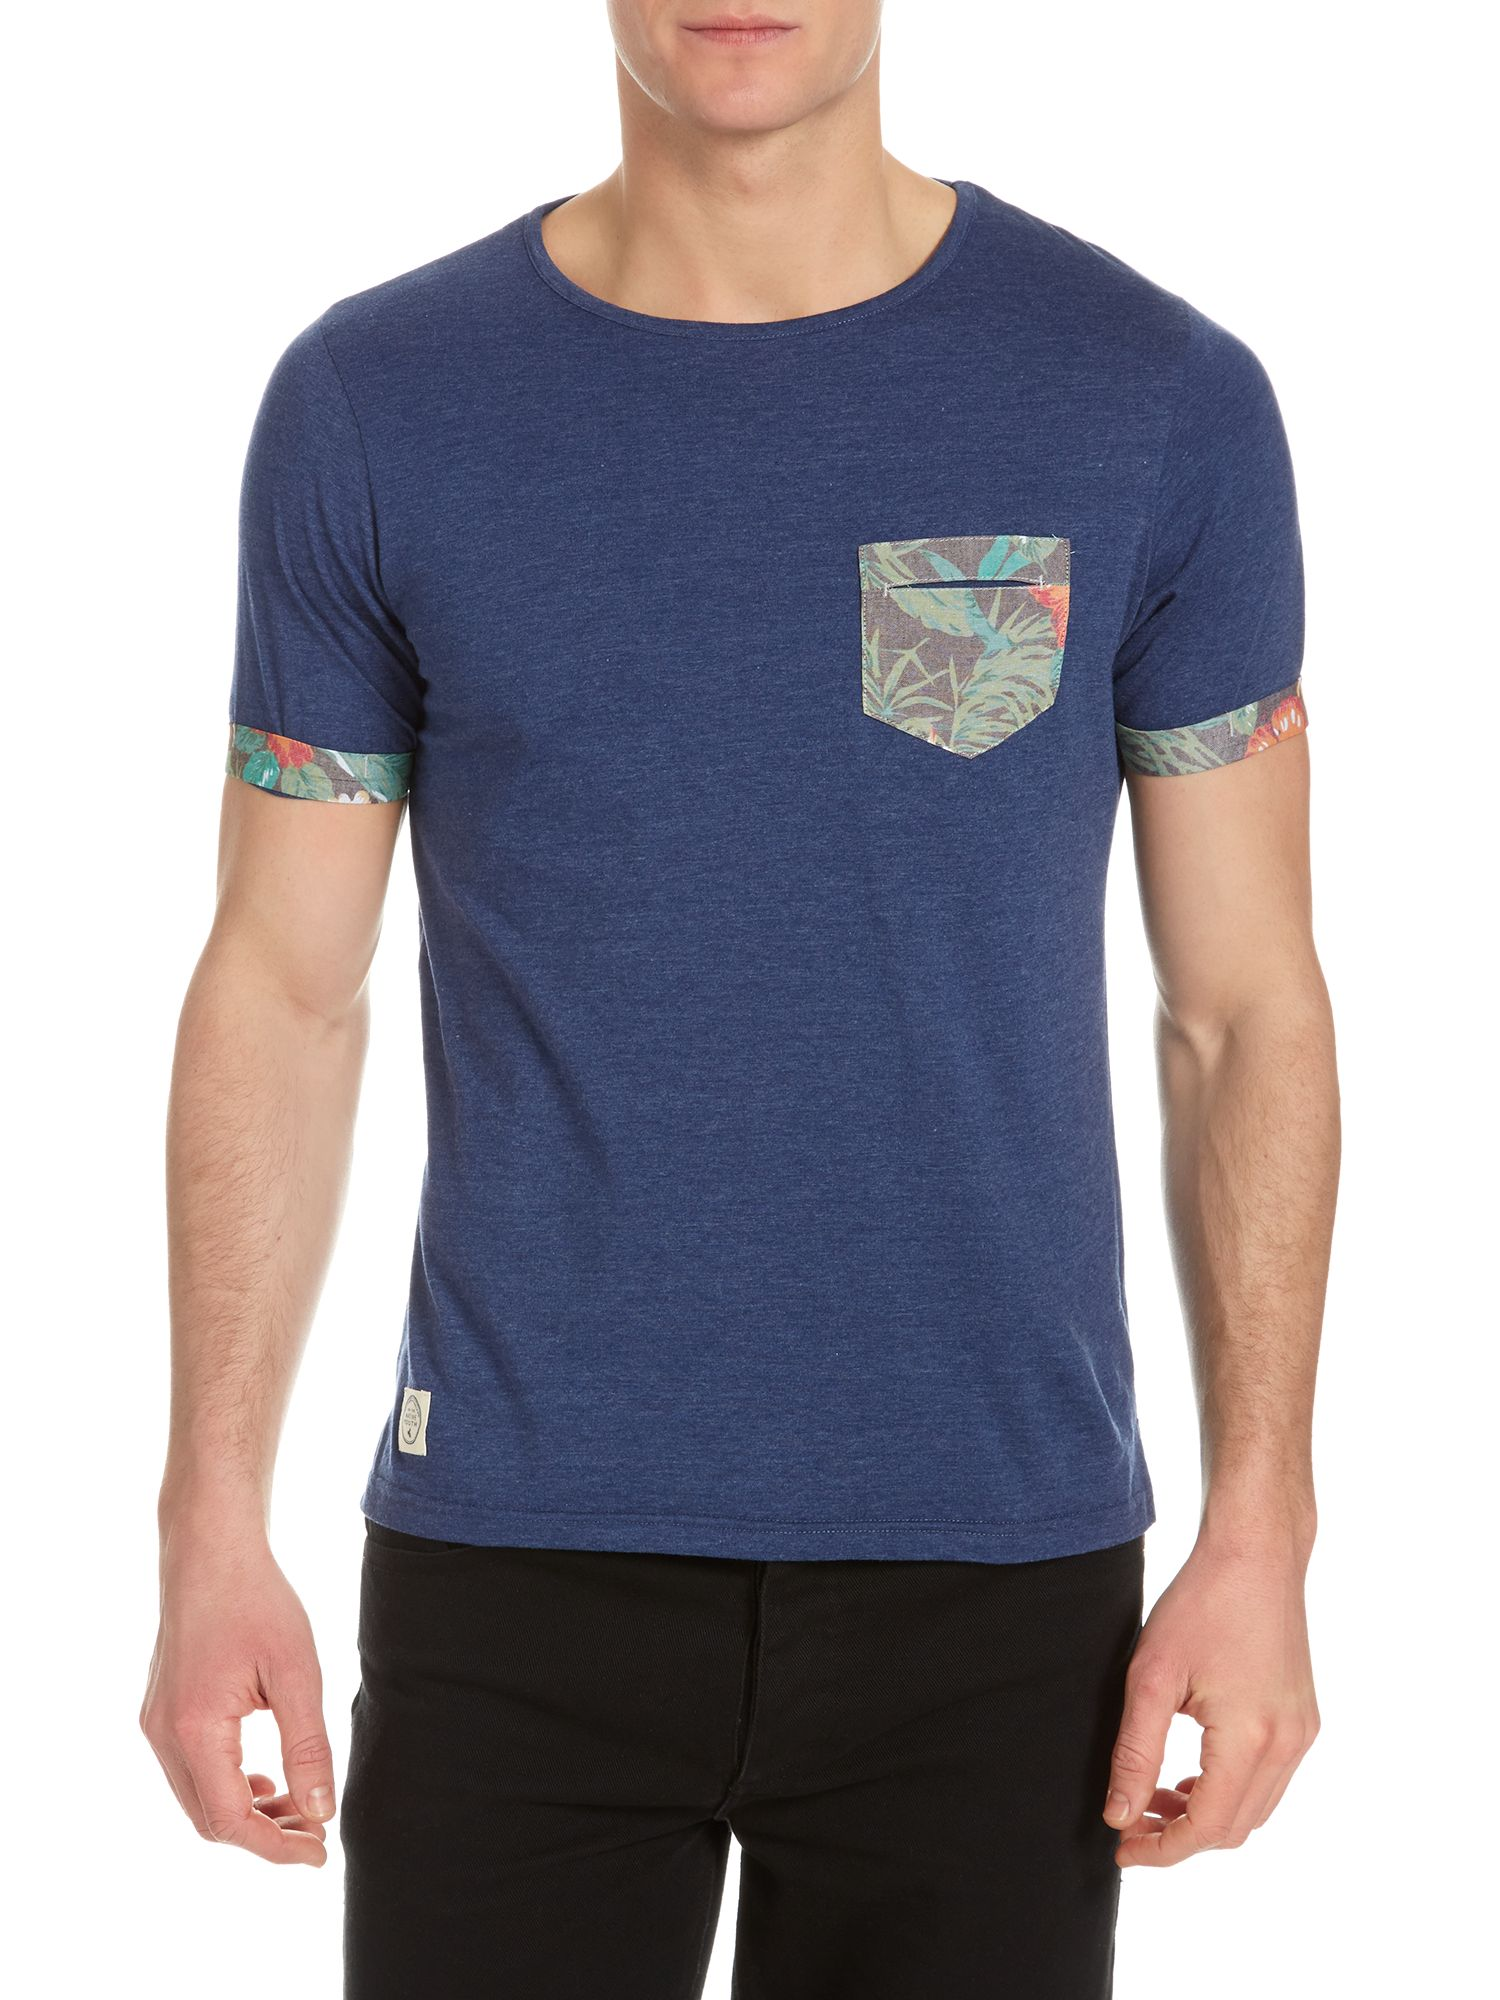 T-shirt with palm tree pocket